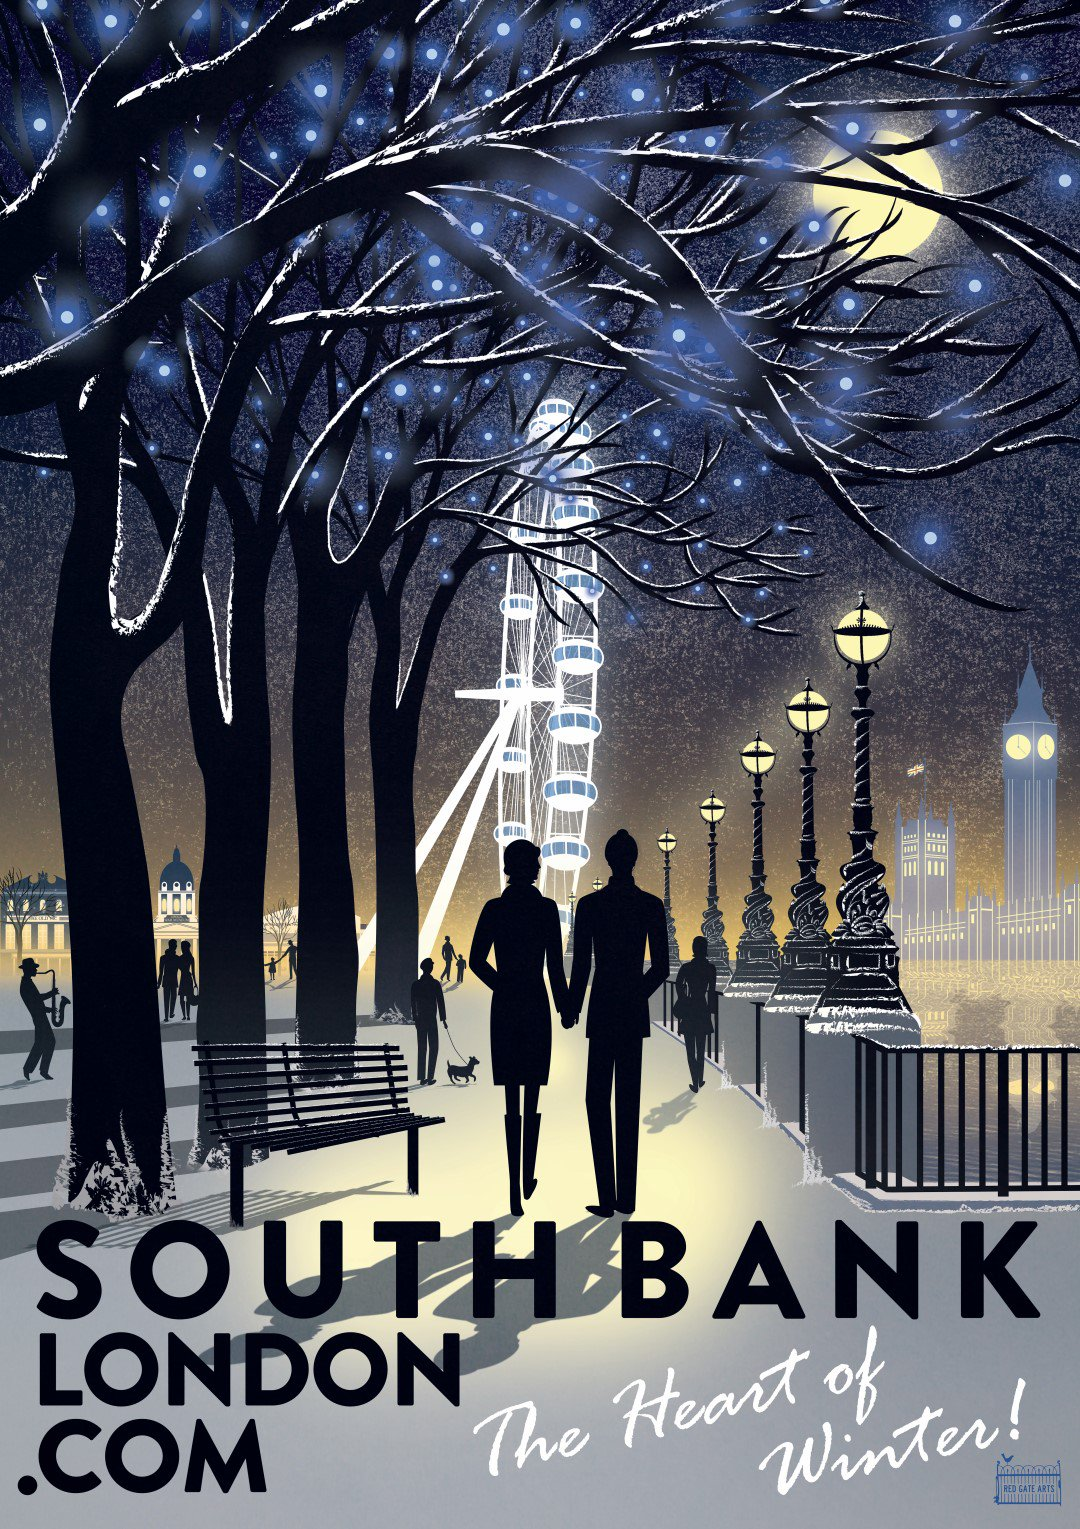 .@southbanklondon And we're loving the new #HeartOfWinter season poster too! https://t.co/iEUJZkquNm